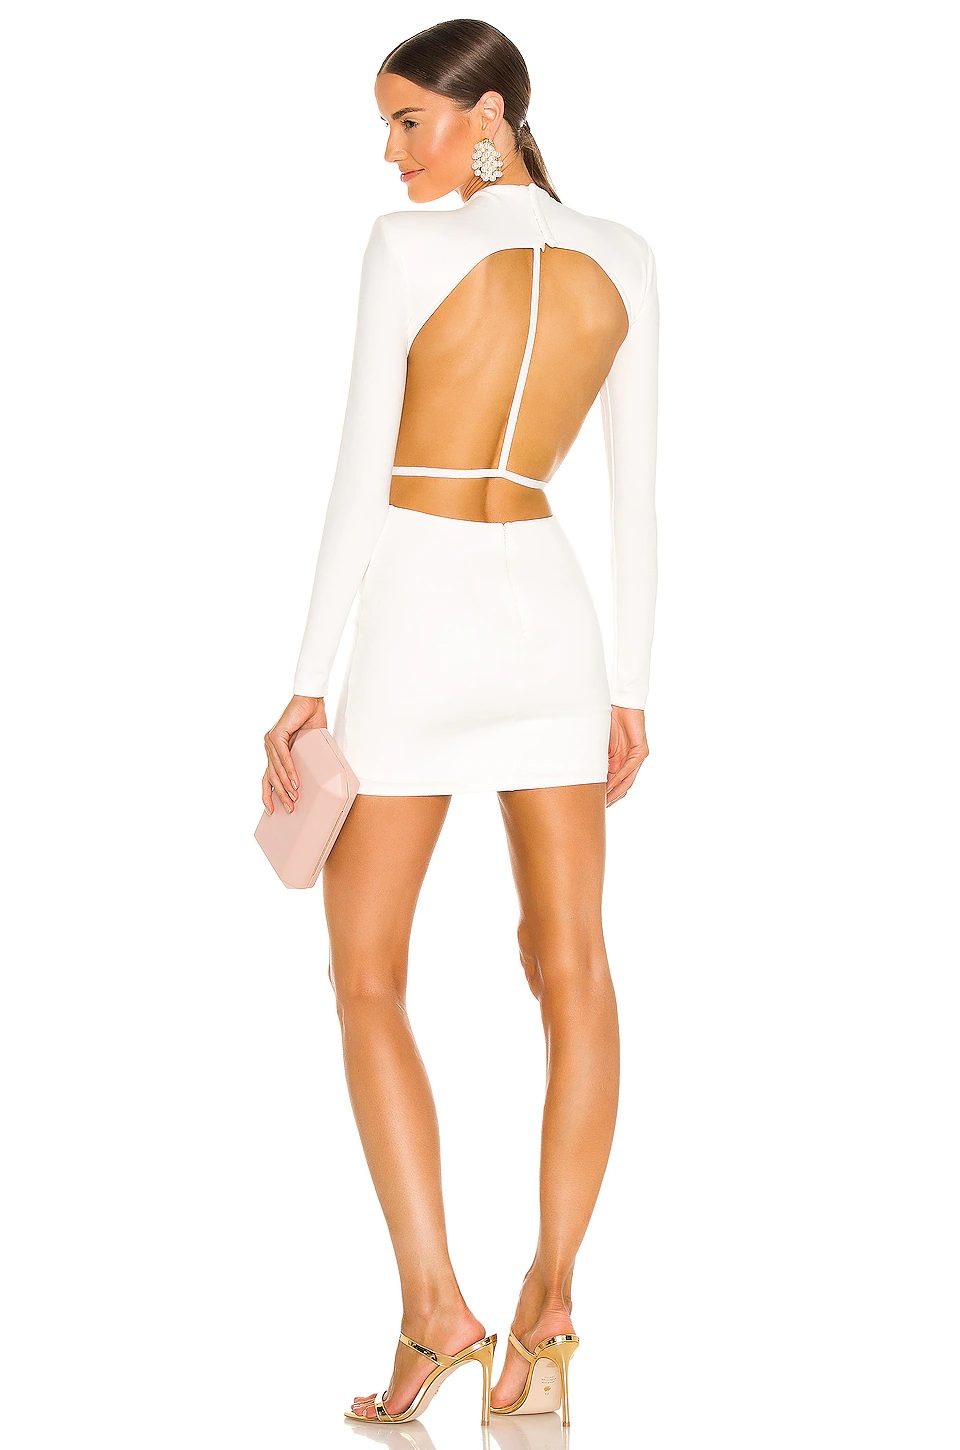 White backless mini dress for going out